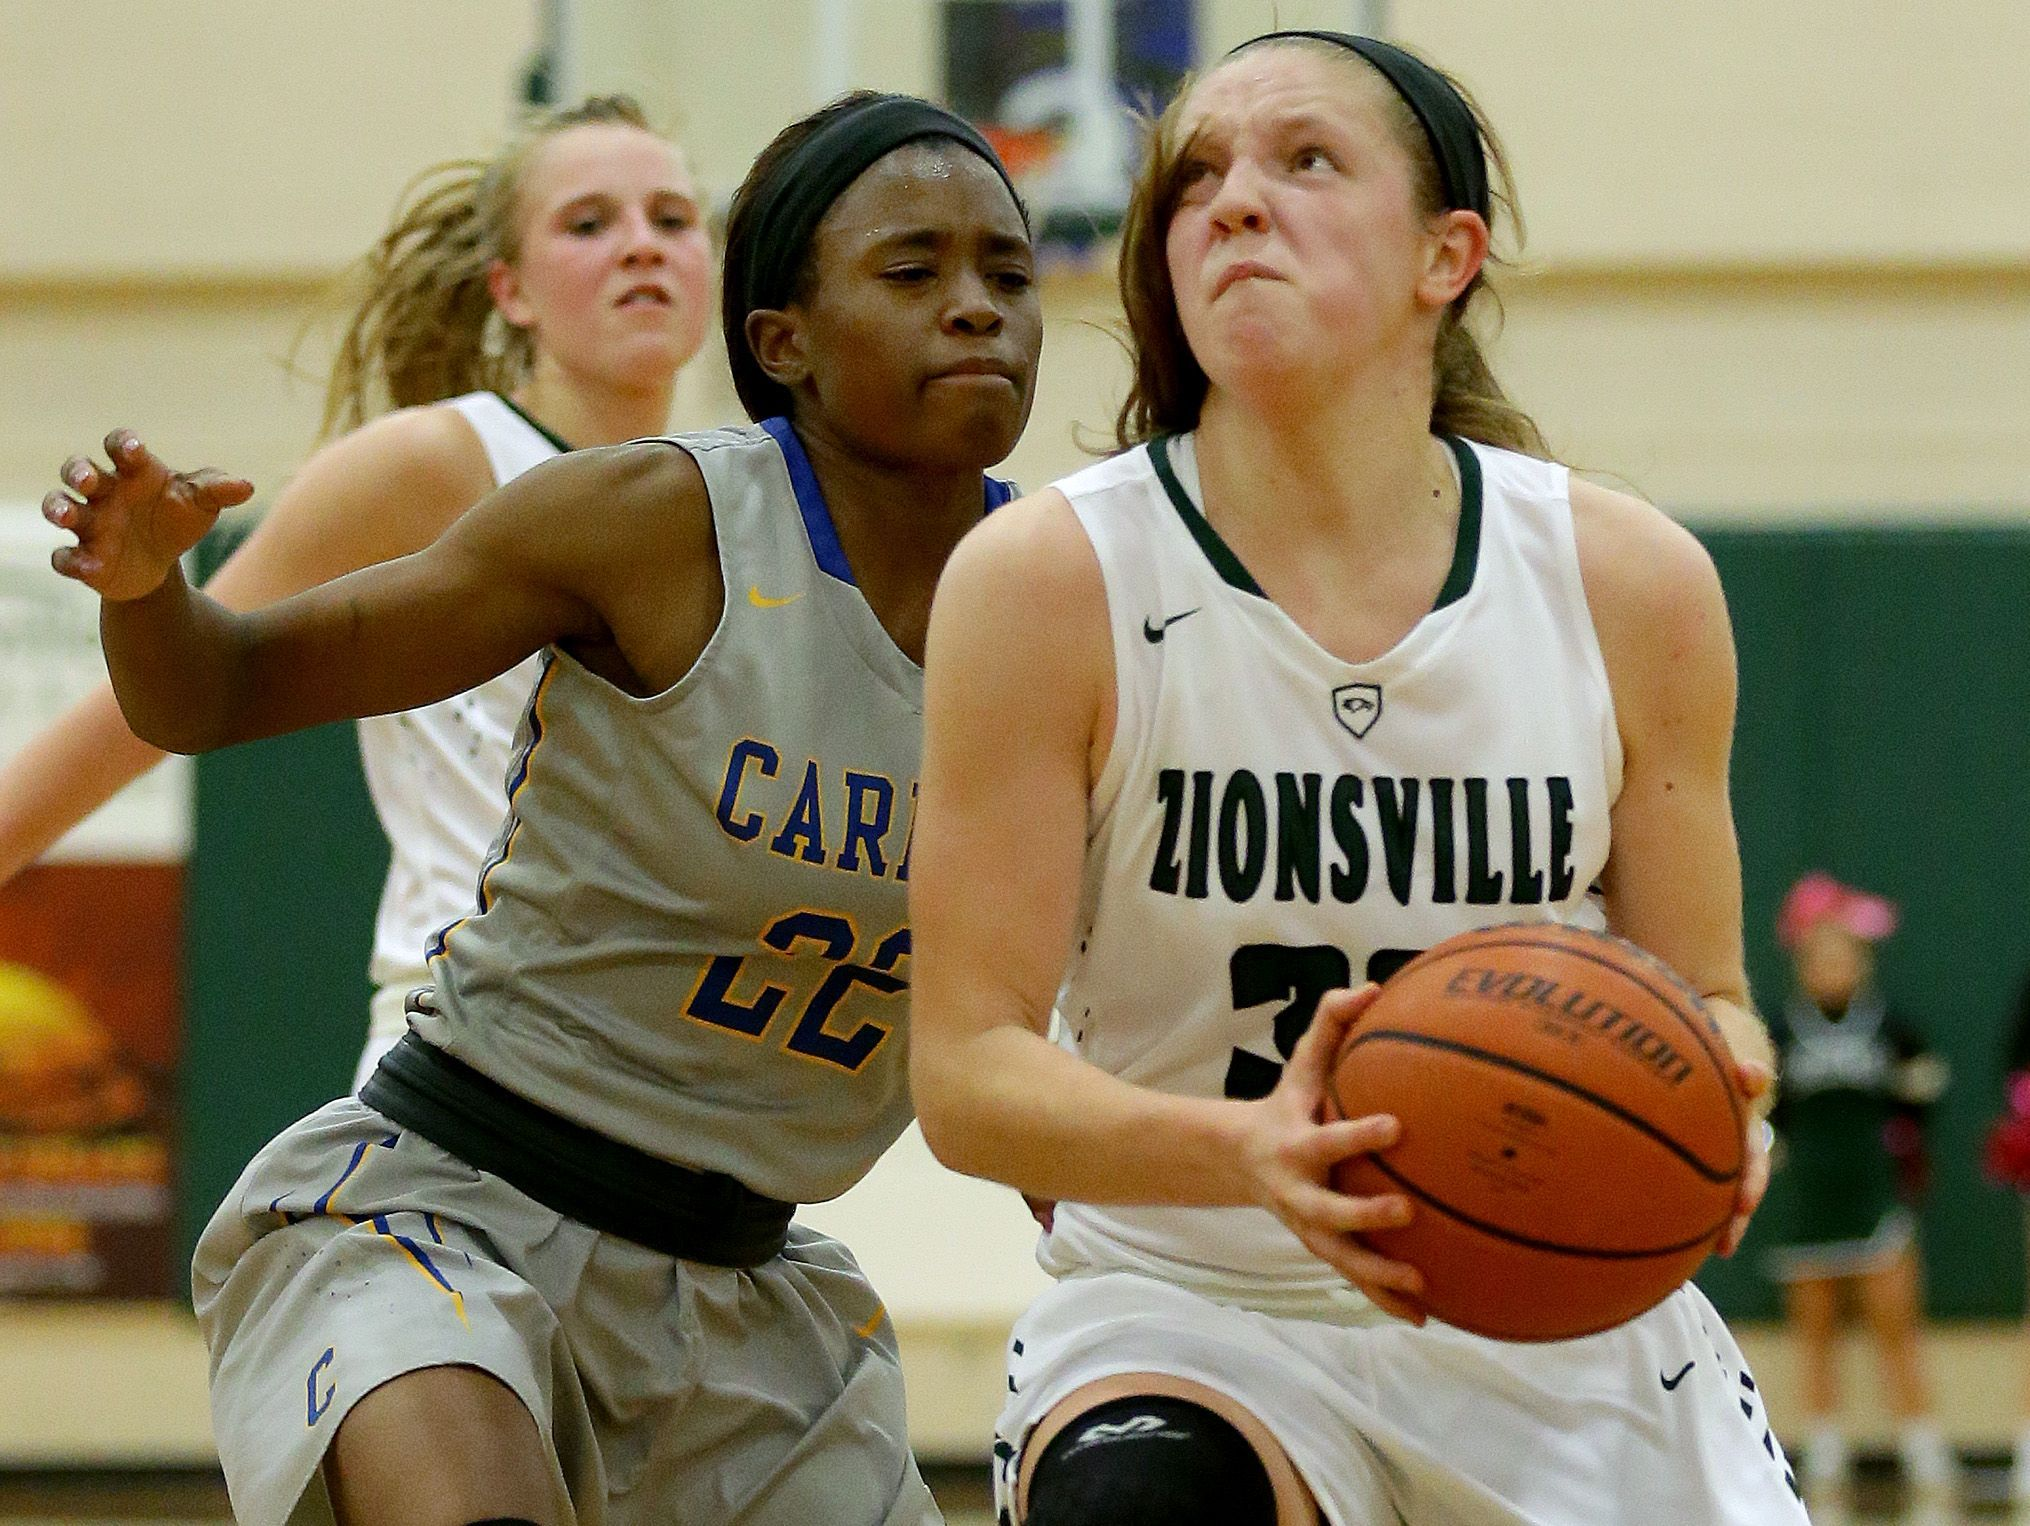 Zionsville's Rachel McLimore (32) drives to the basket around against Carmel, Nov. 15, 2016.